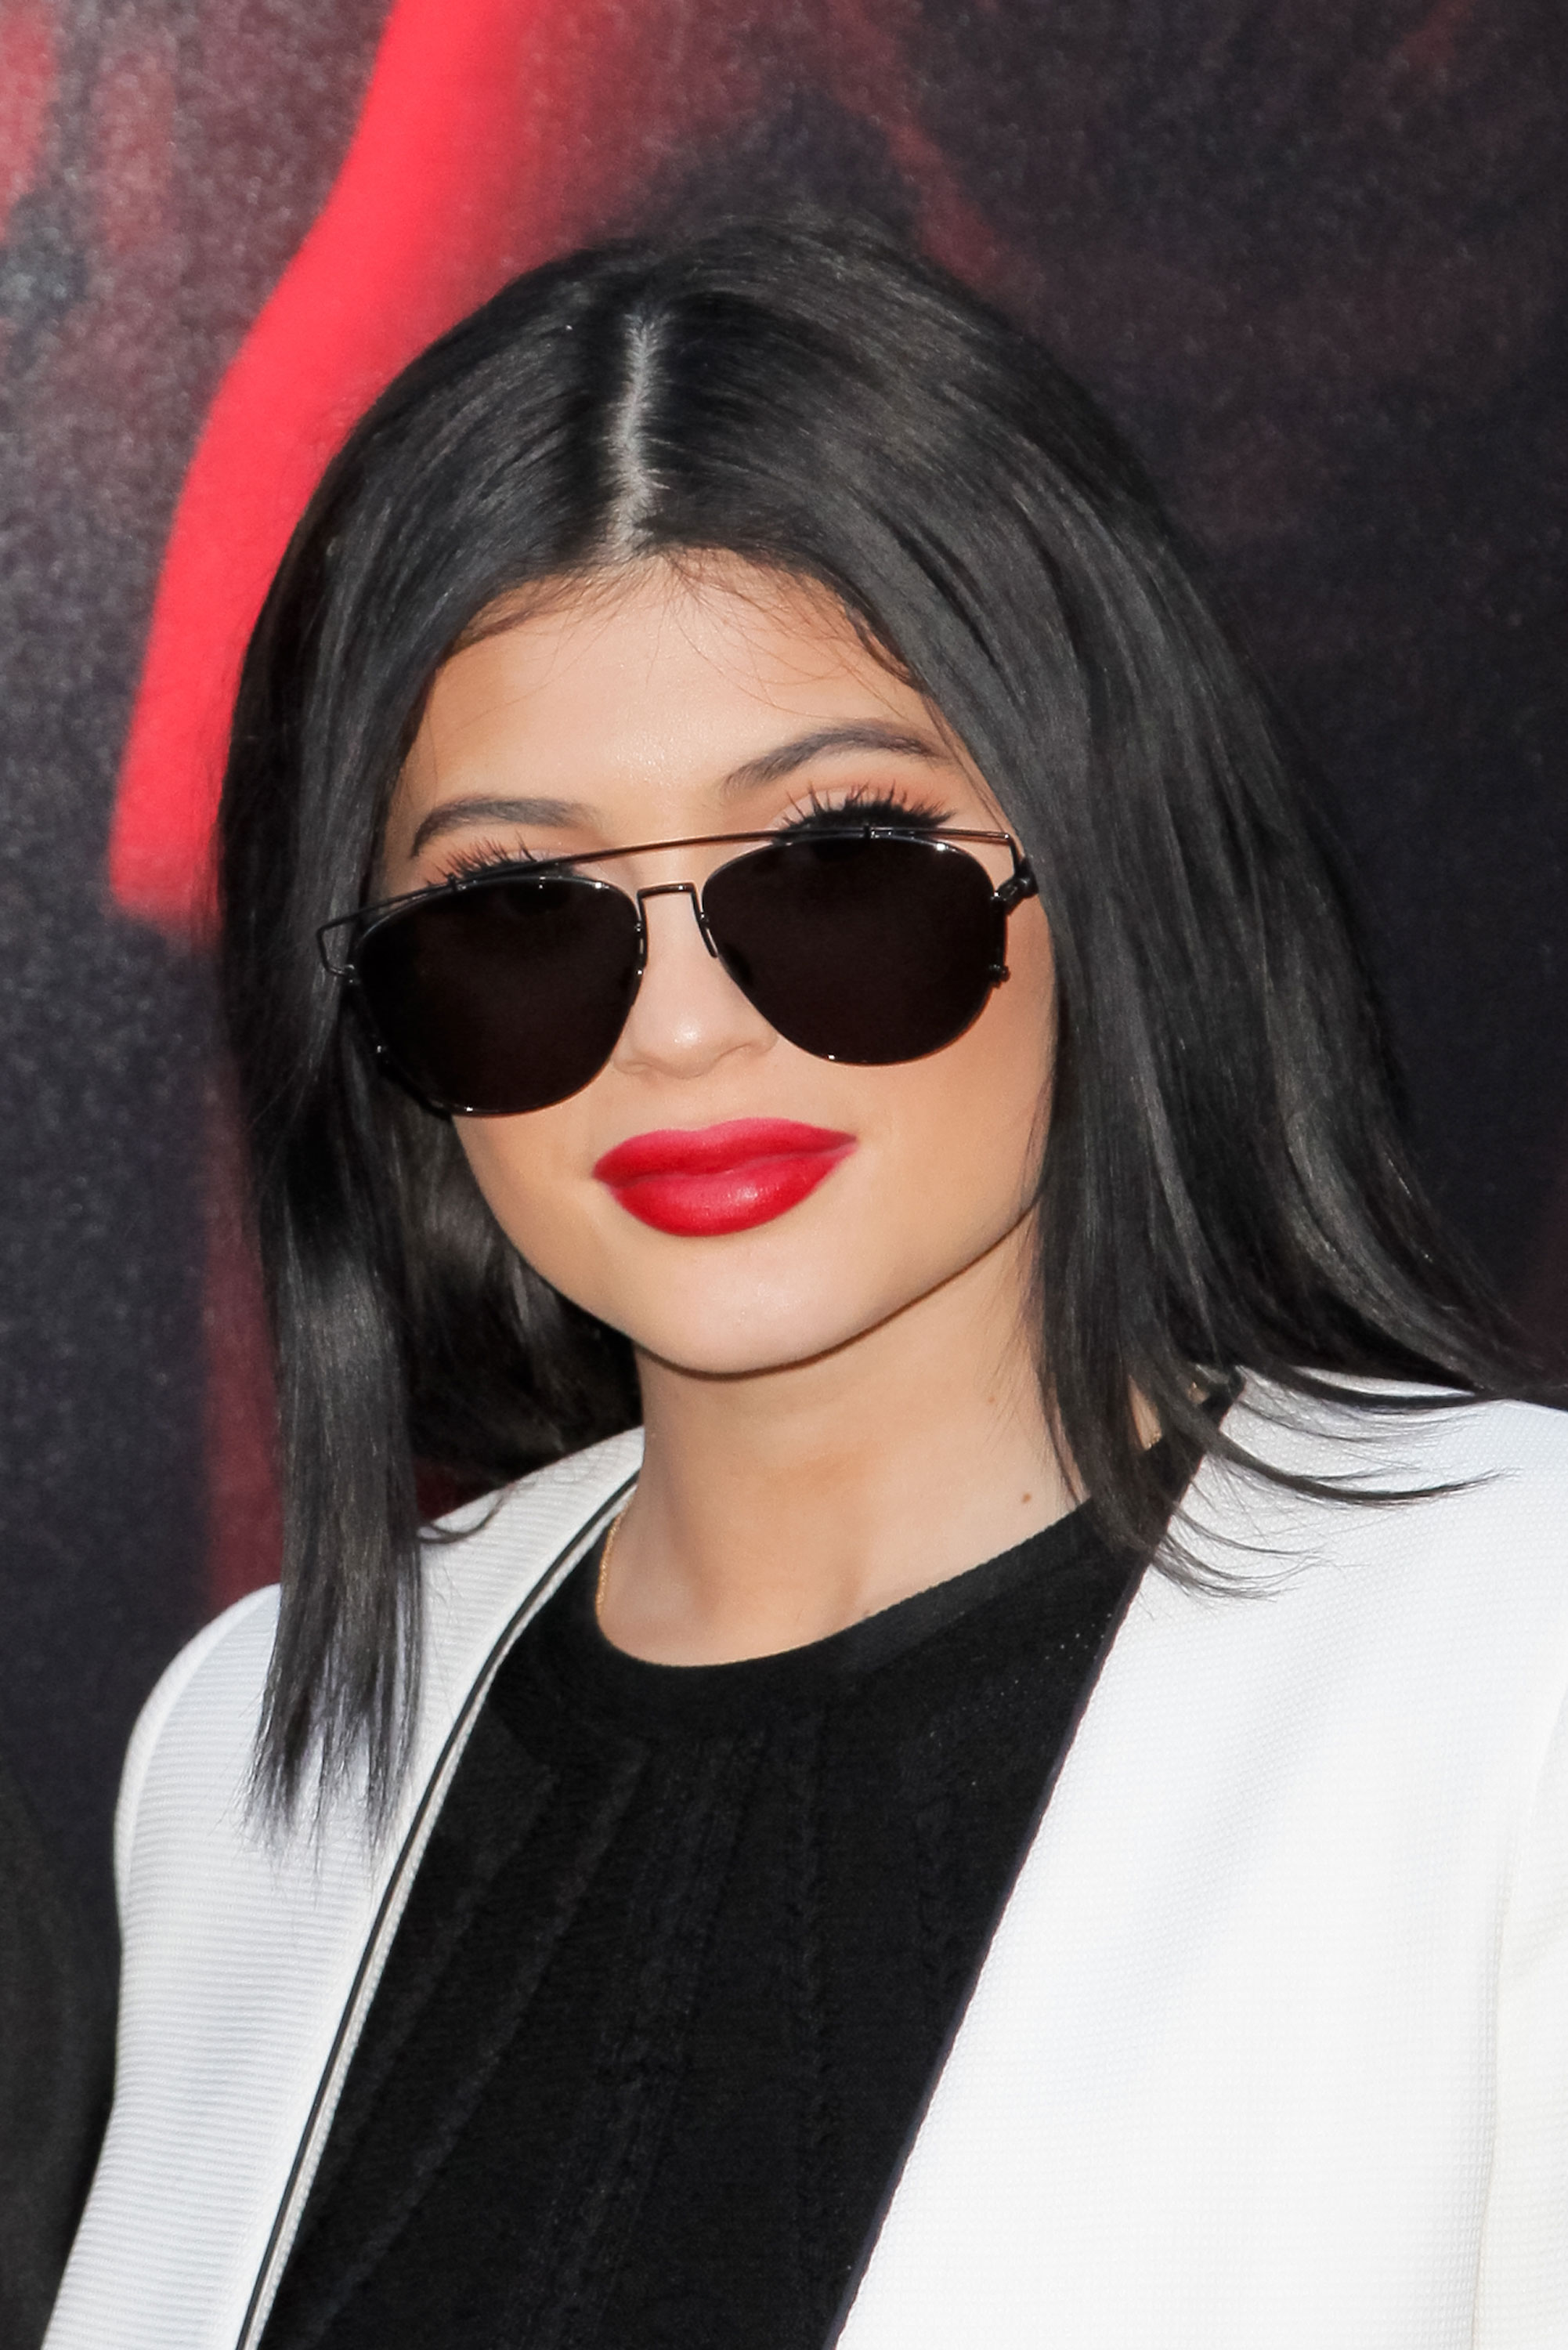 Anothe Kylie Lip Kit Dupe That S Going To Make Your Lips: Kylie Jenner Just Revealed Another New Lip Kit Colour